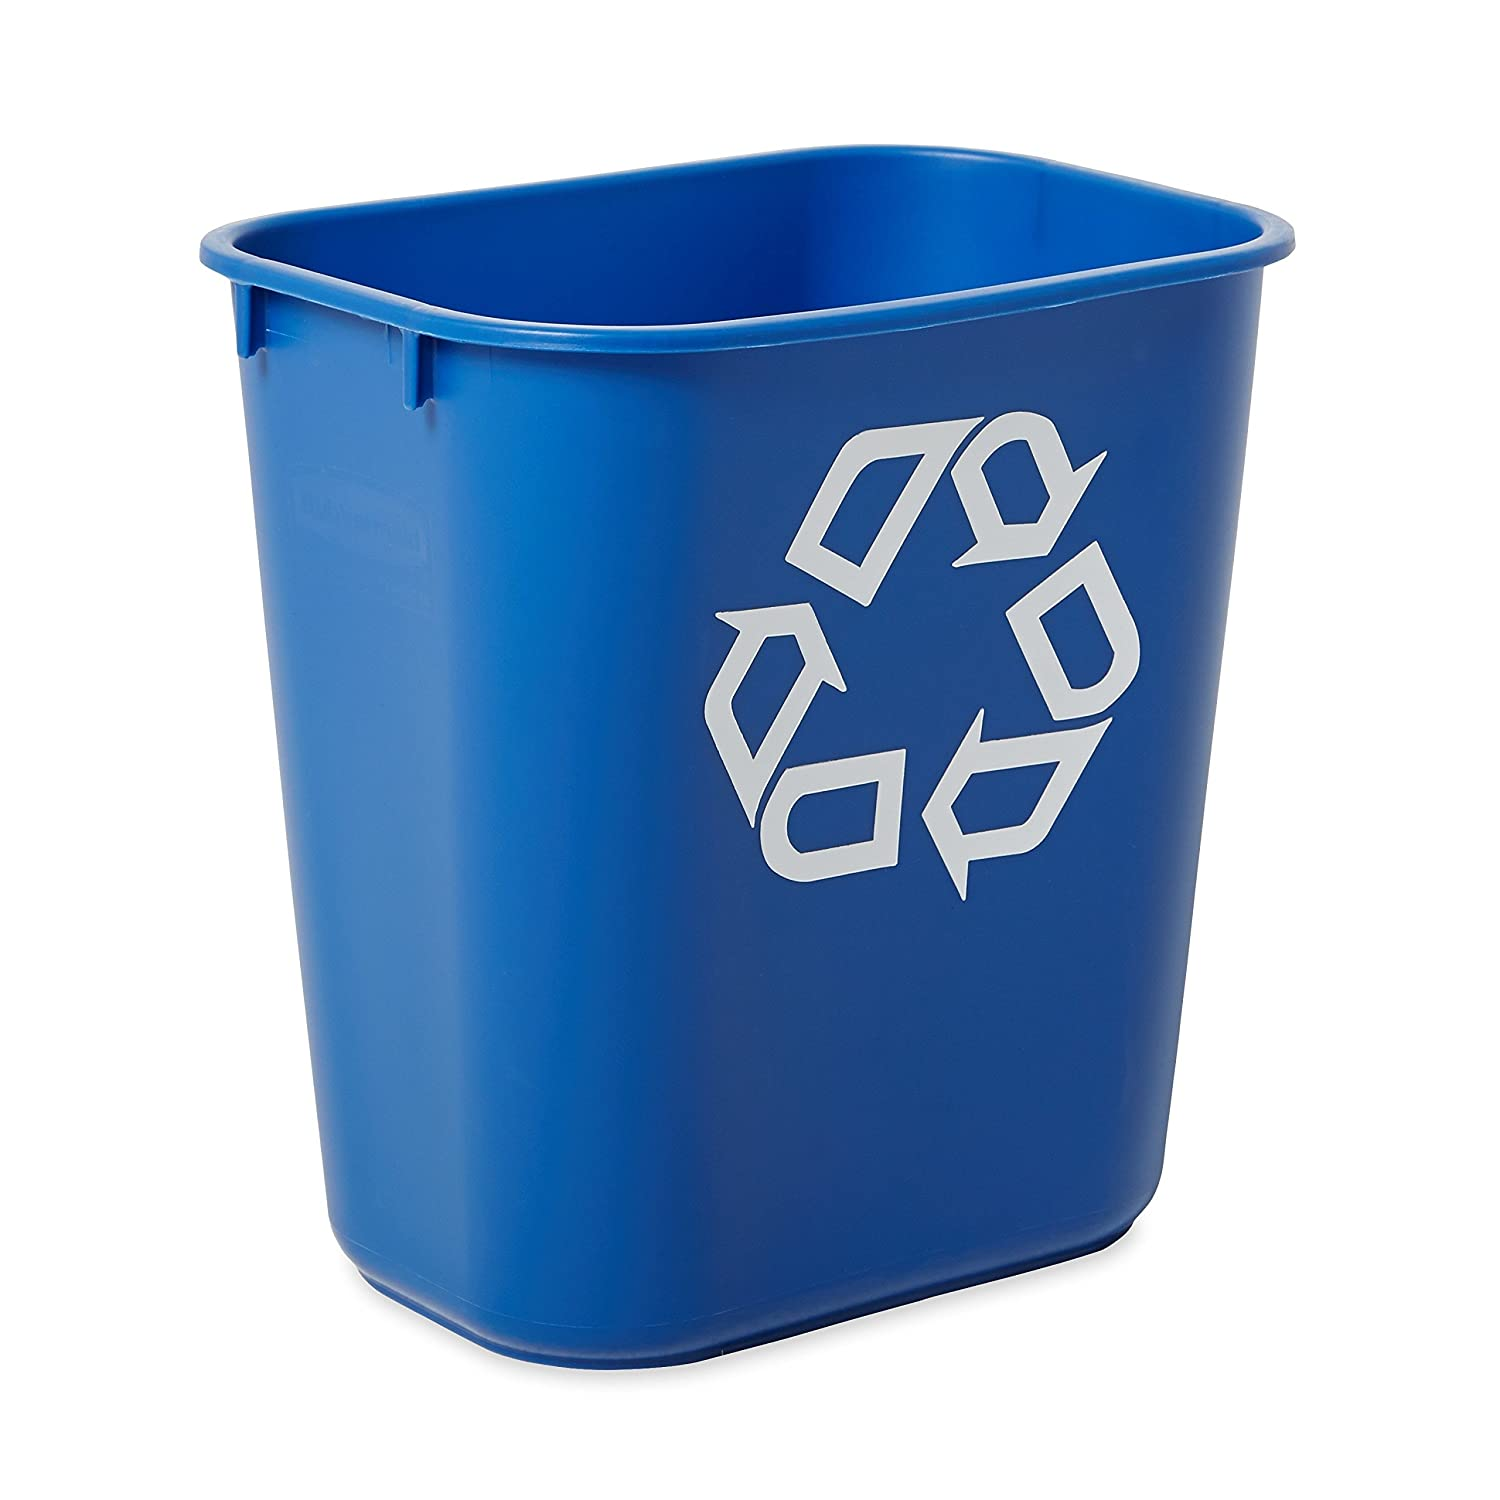 Rubbermaid Commercial Products FG295573BLUE Plastic Resin Deskside Recycling Can, 3.5 Gallon/13 Quart, Blue Recycling Symbol (Pack of 12)